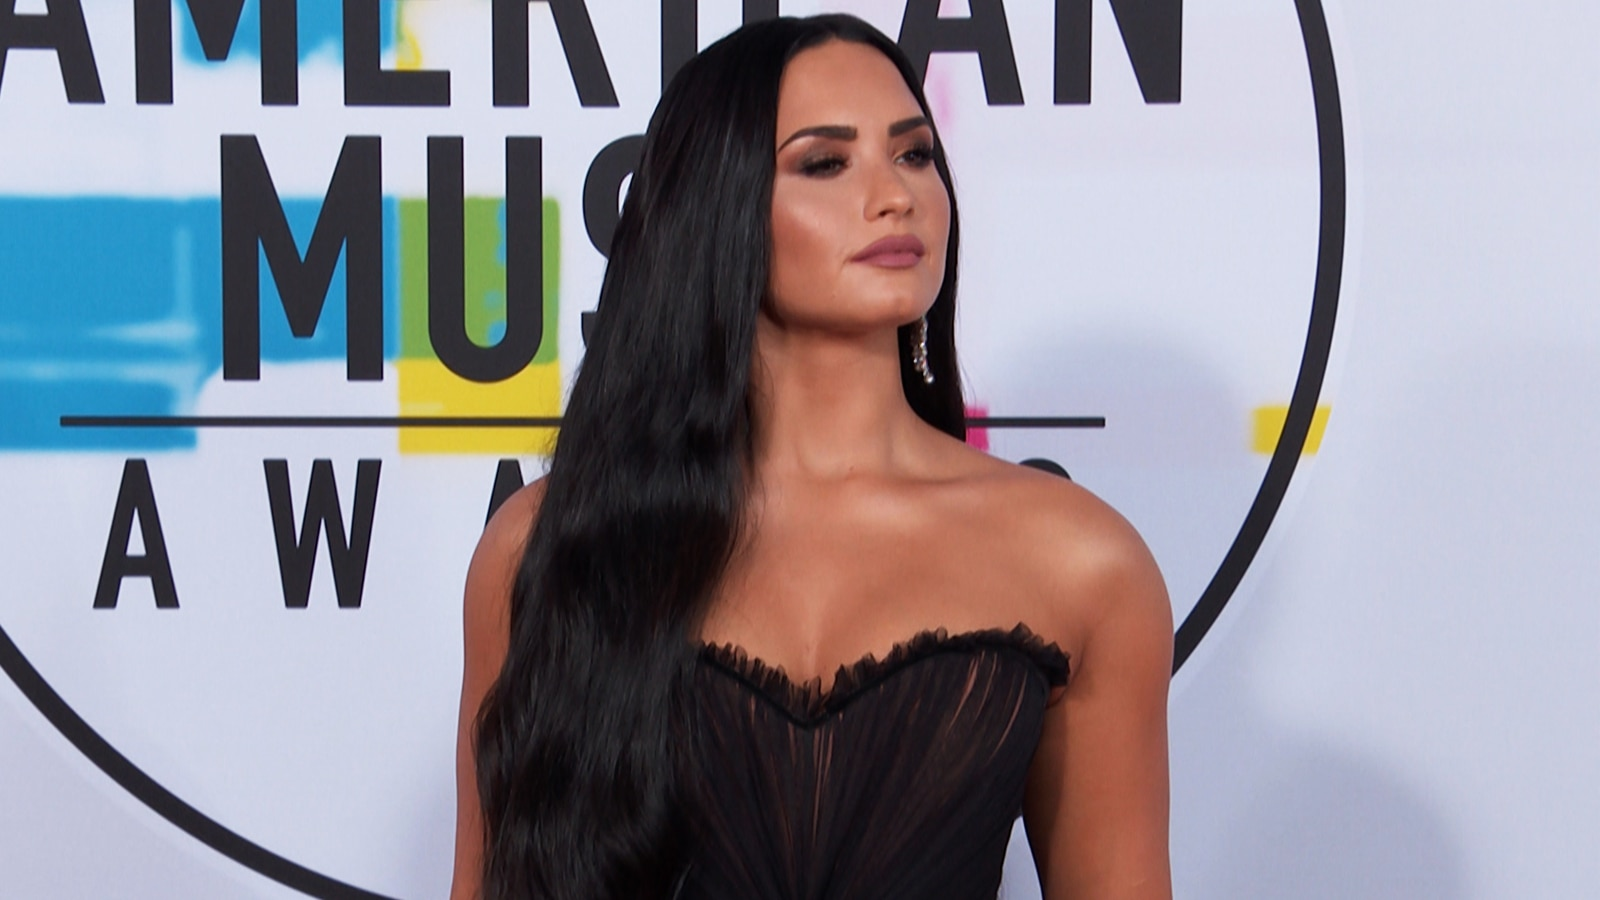 Watch access interview demi lovato opens up about body insecurities watch access interview demi lovato opens up about body insecurities on social media admits to gaining weight nbc m4hsunfo